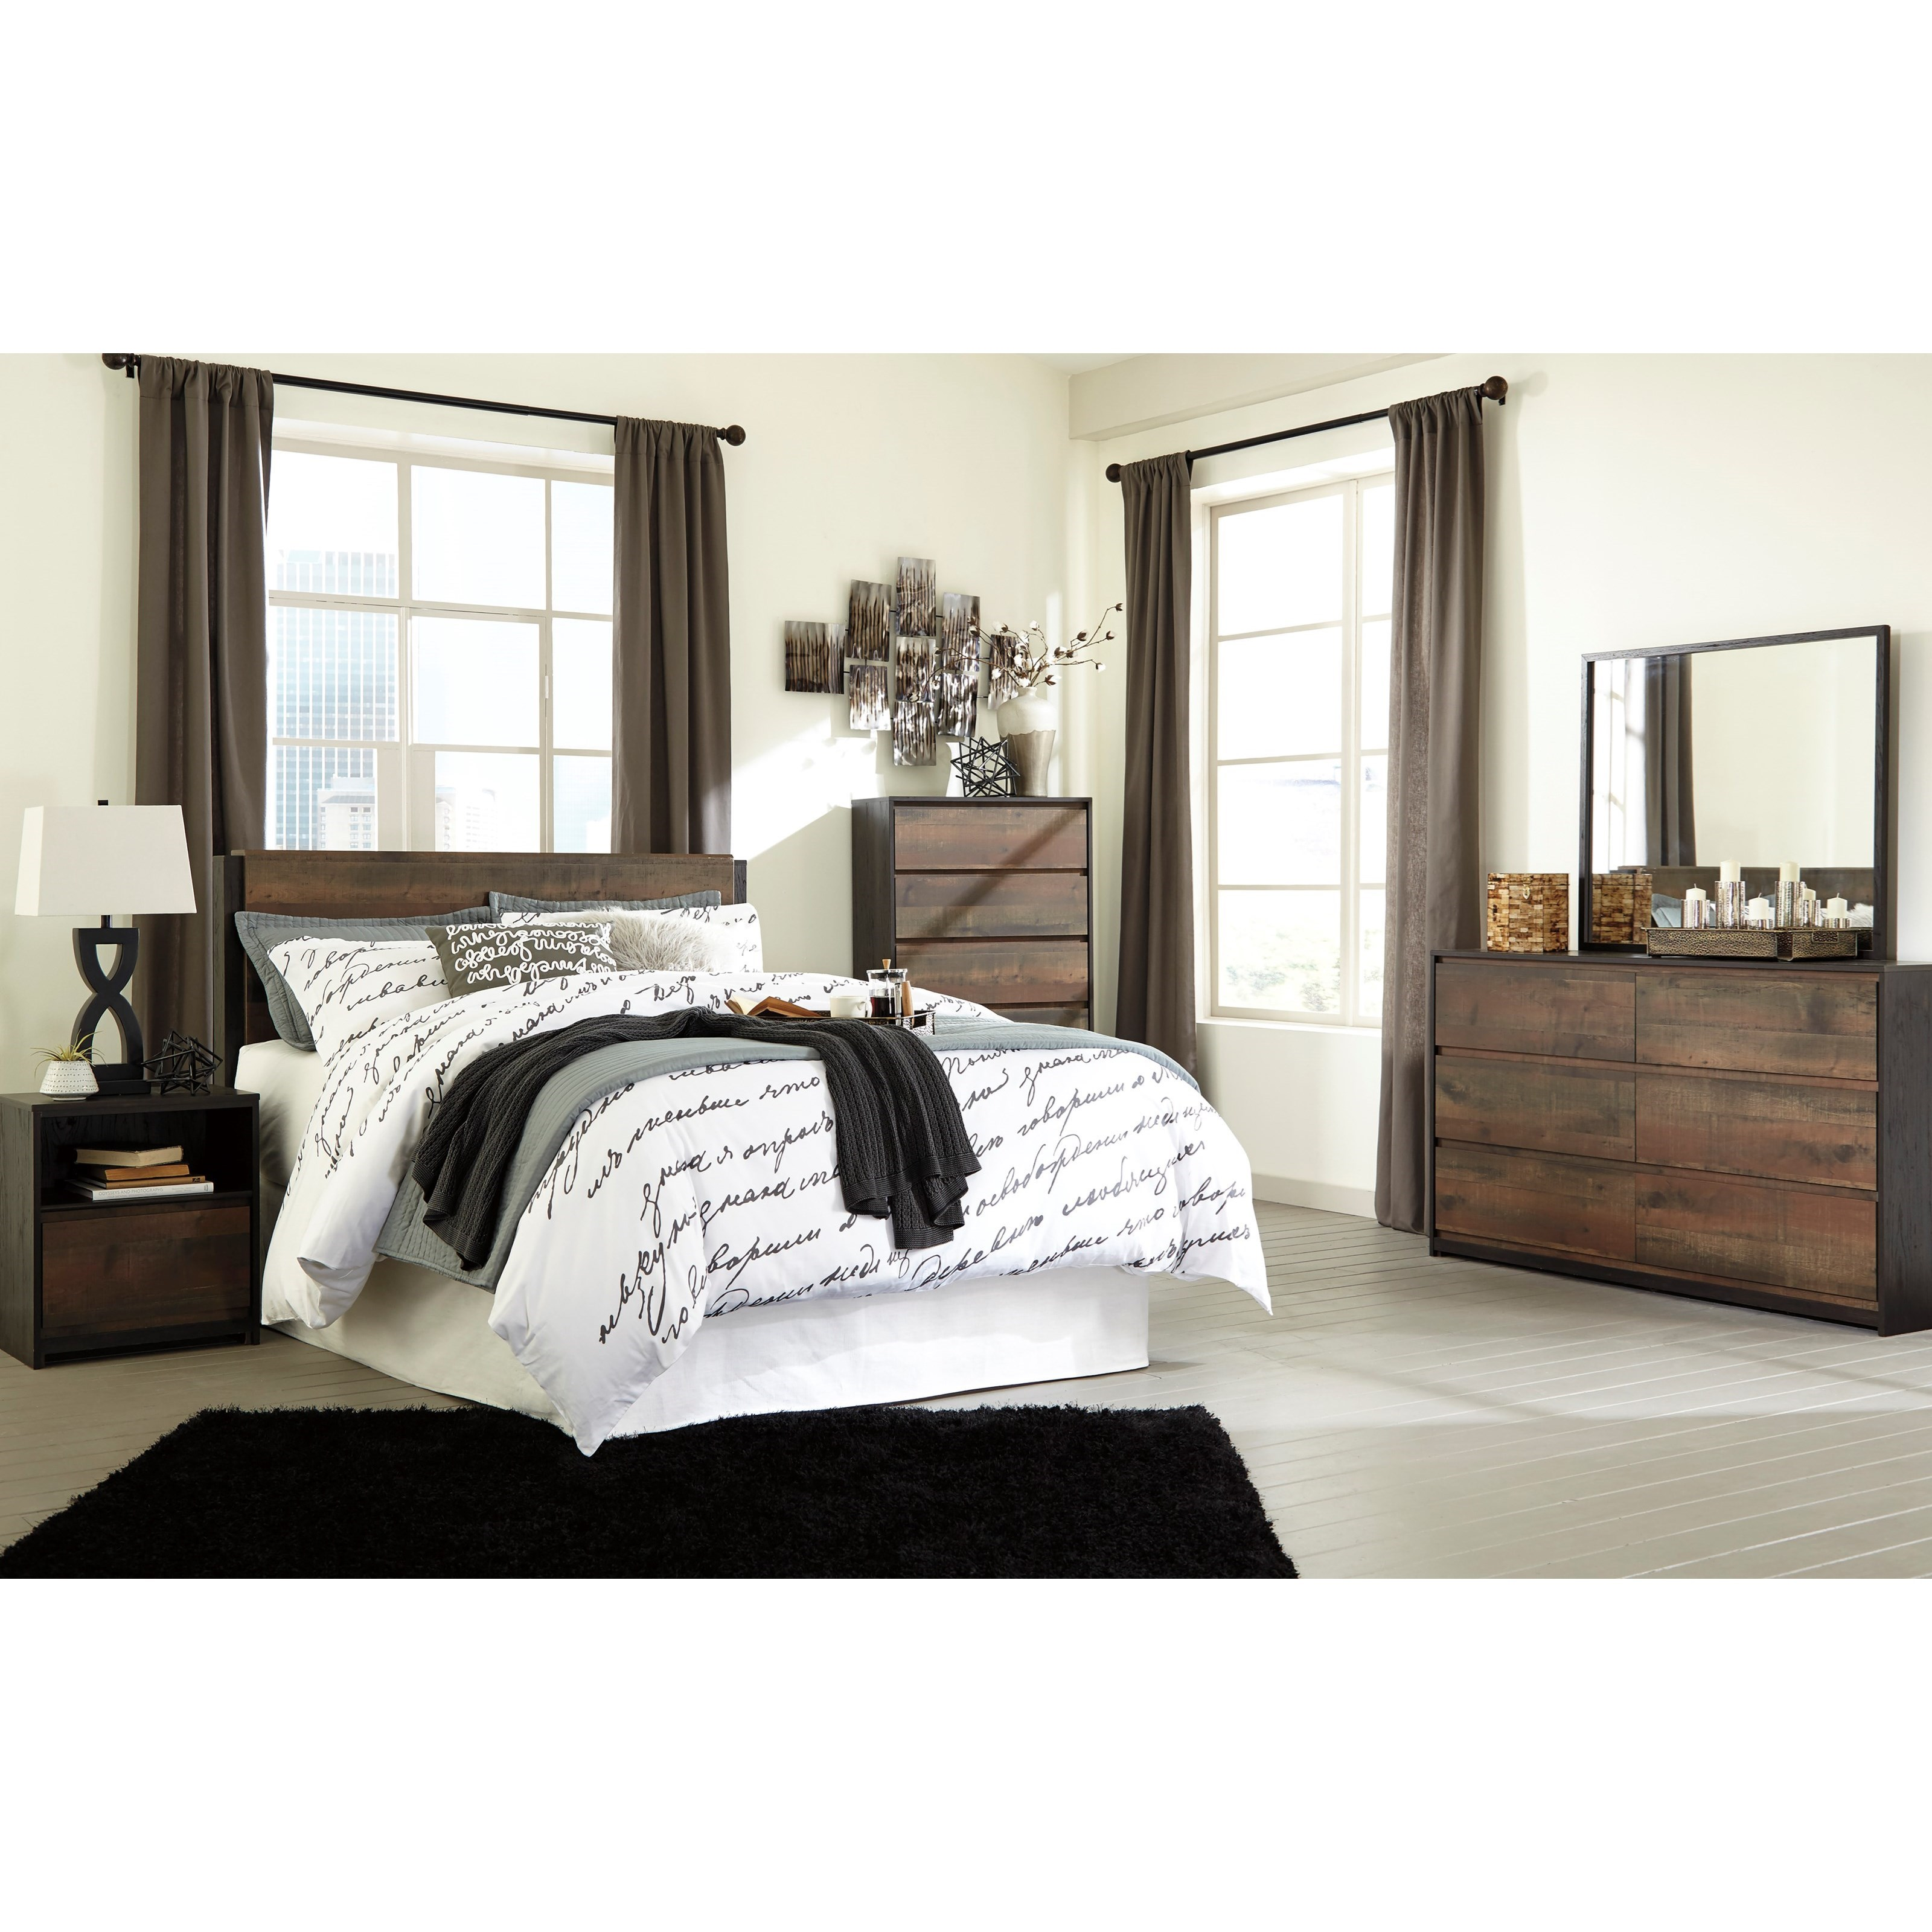 Signature design by ashley windlore queen bedroom group for Signature bedroom furniture